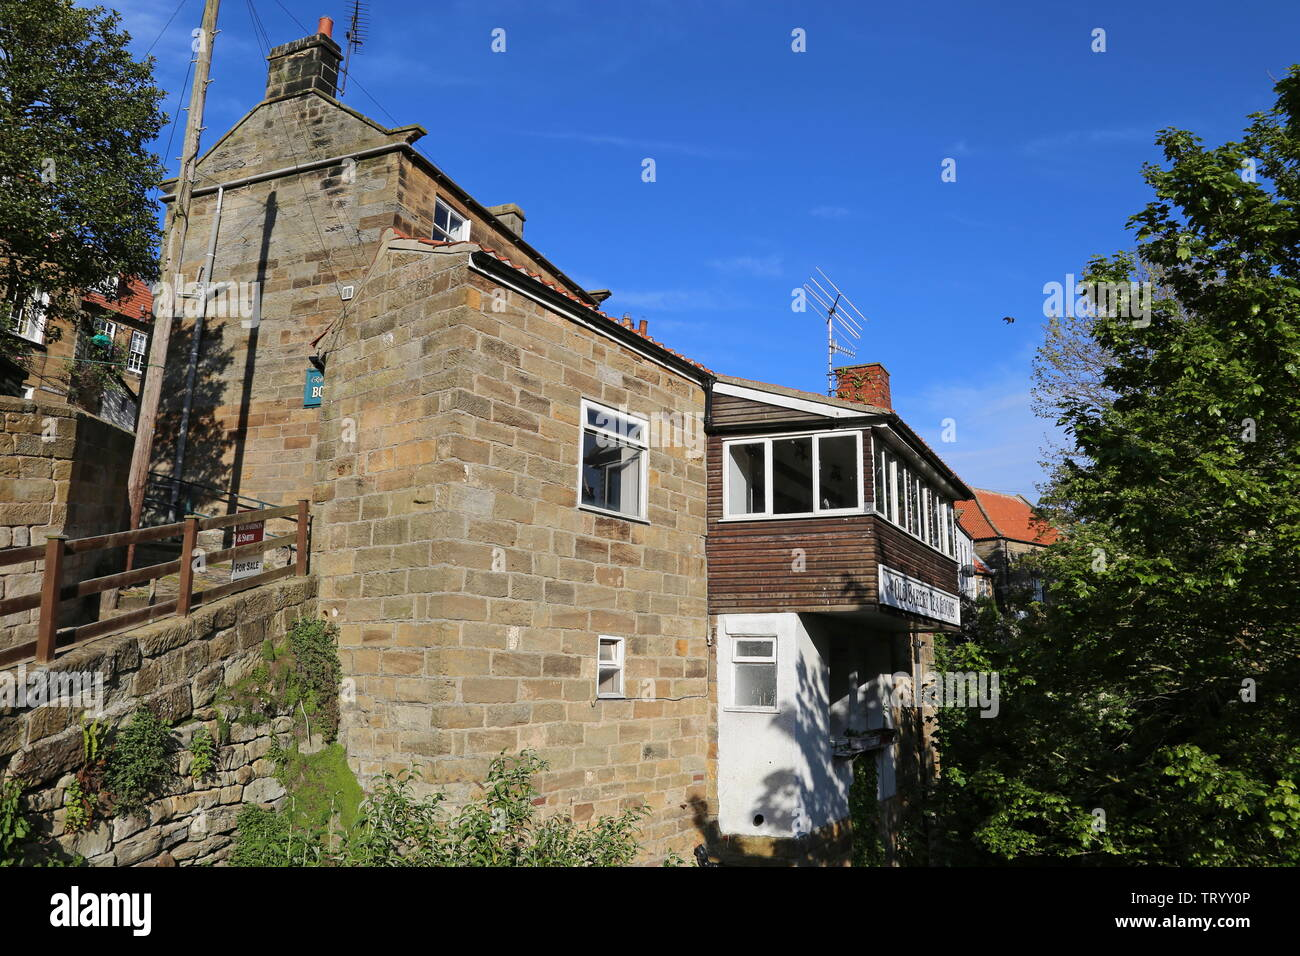 Old Bakery Tea Rooms, Chapel Street, Robin Hood's Bay, Borough of Scarborough, North Yorkshire, England, Great Britain, United Kingdom, UK, Europe Stock Photo